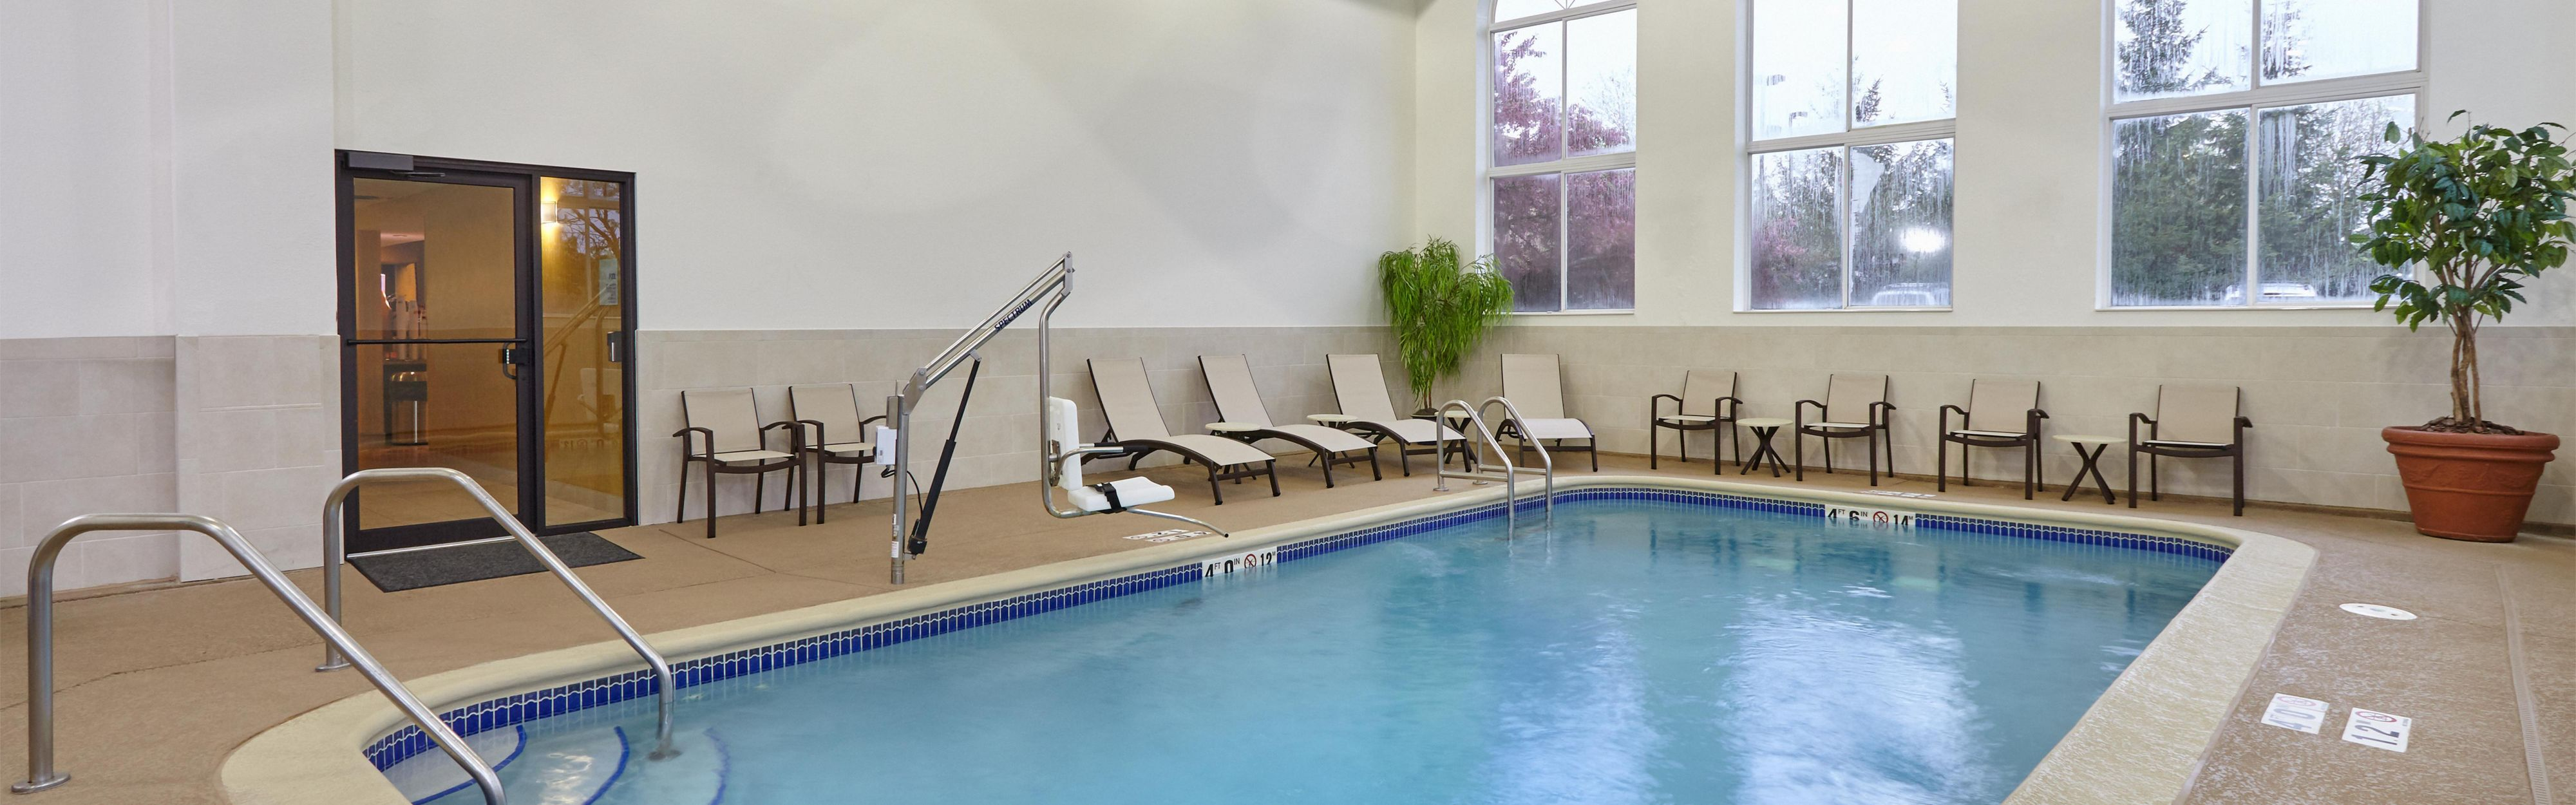 Holiday Inn Express & Suites Chicago-Libertyville image 2